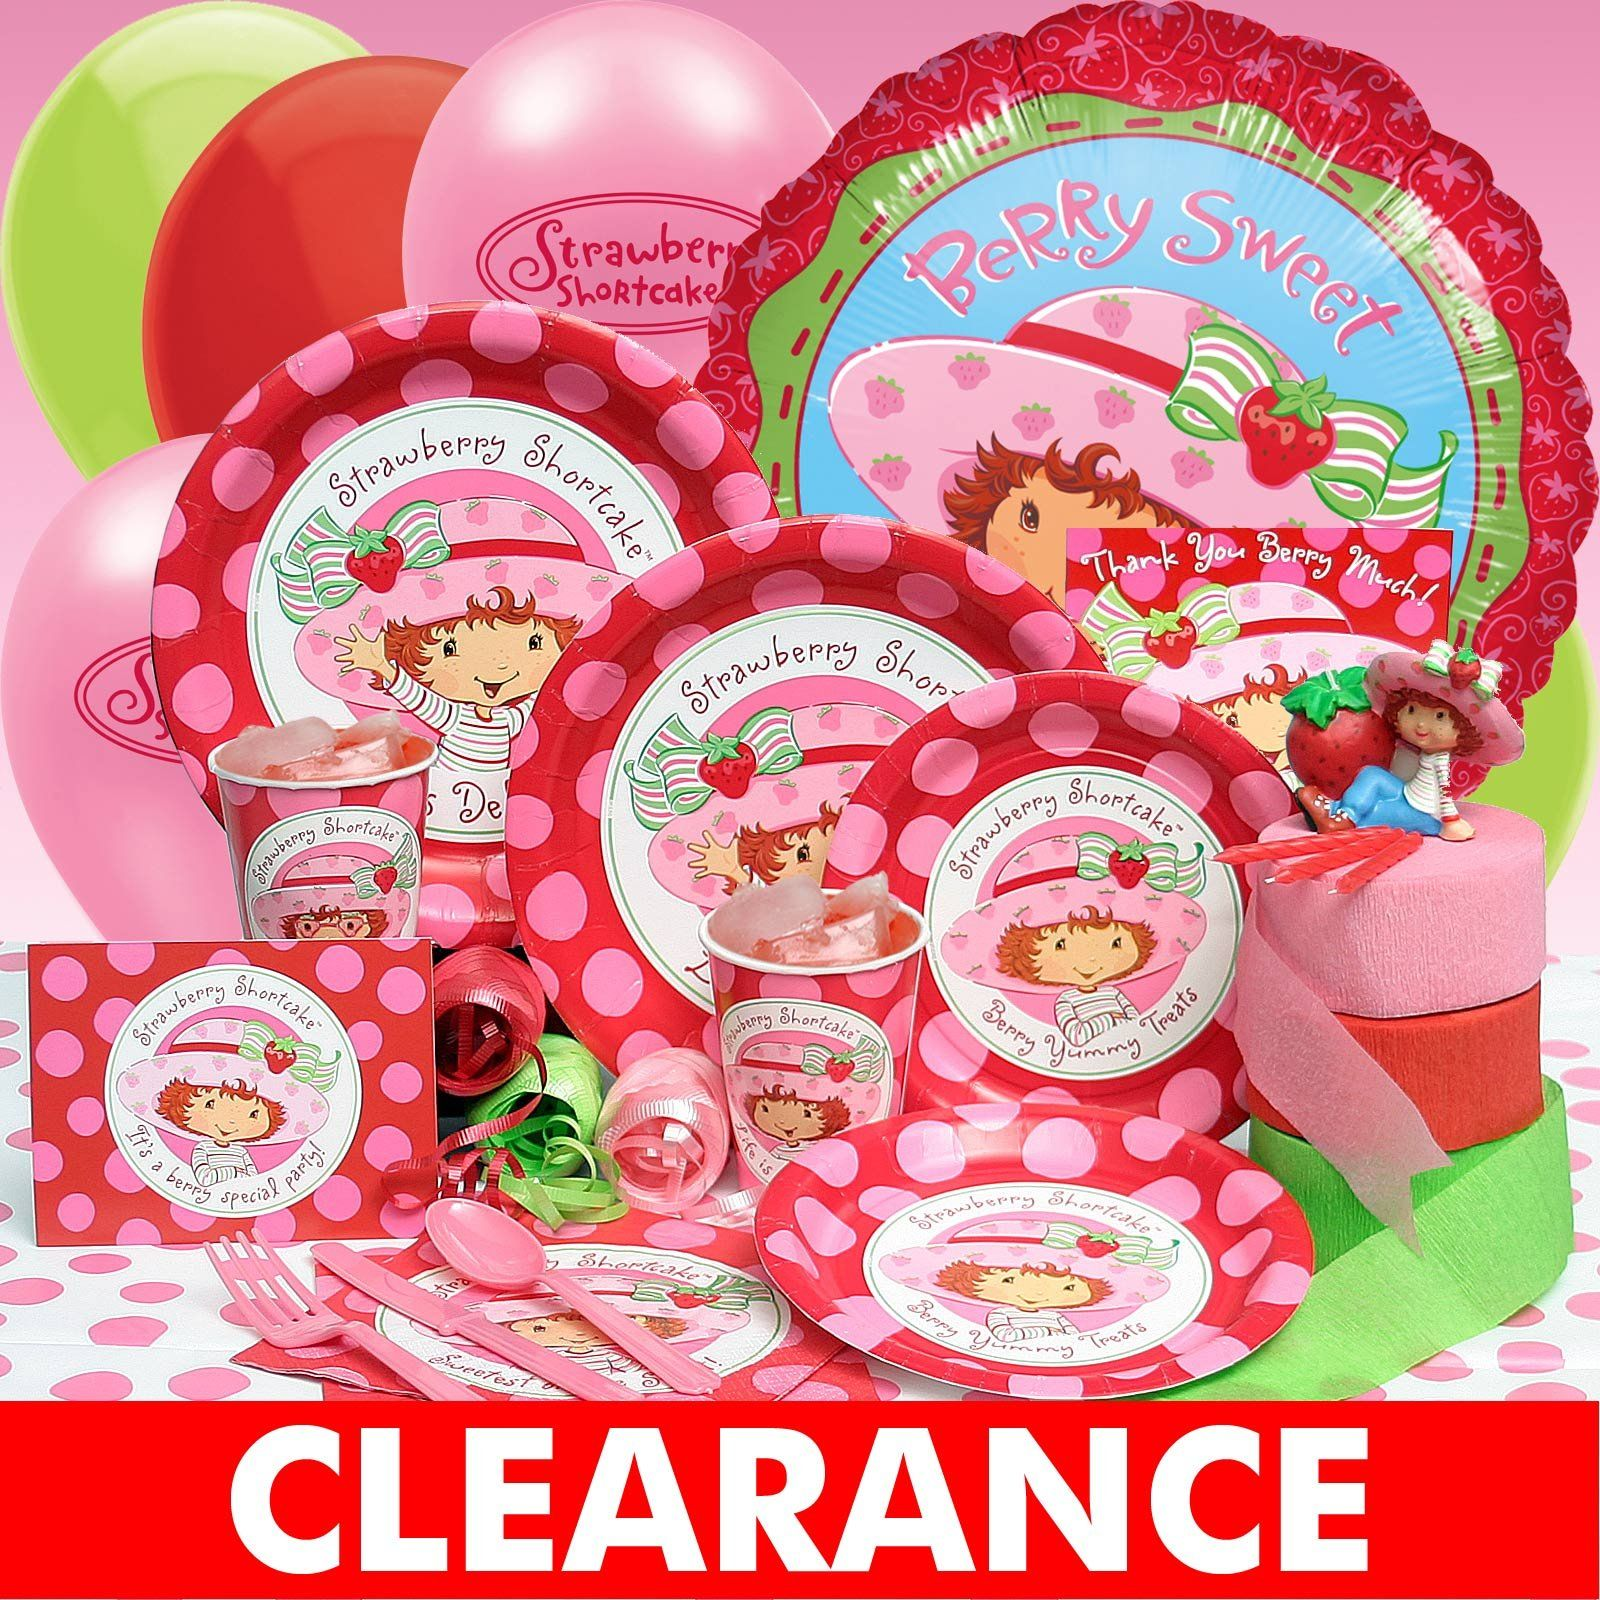 Vintage Strawberry Shortcake Party Decorations Strawberry